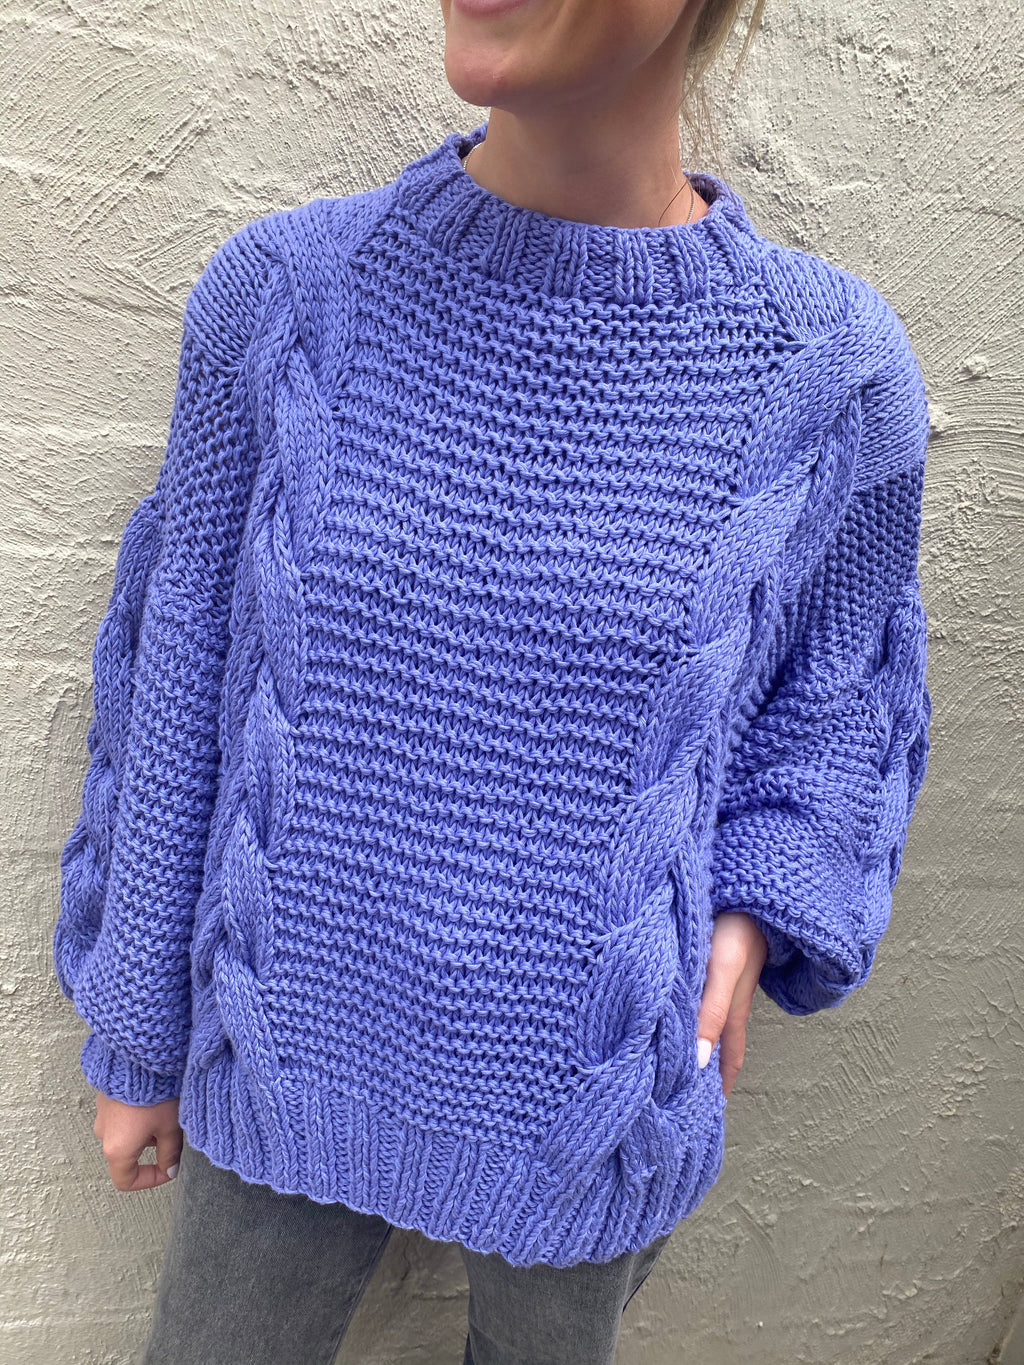 DELFI KNIT - LILAC - FIRST BORN